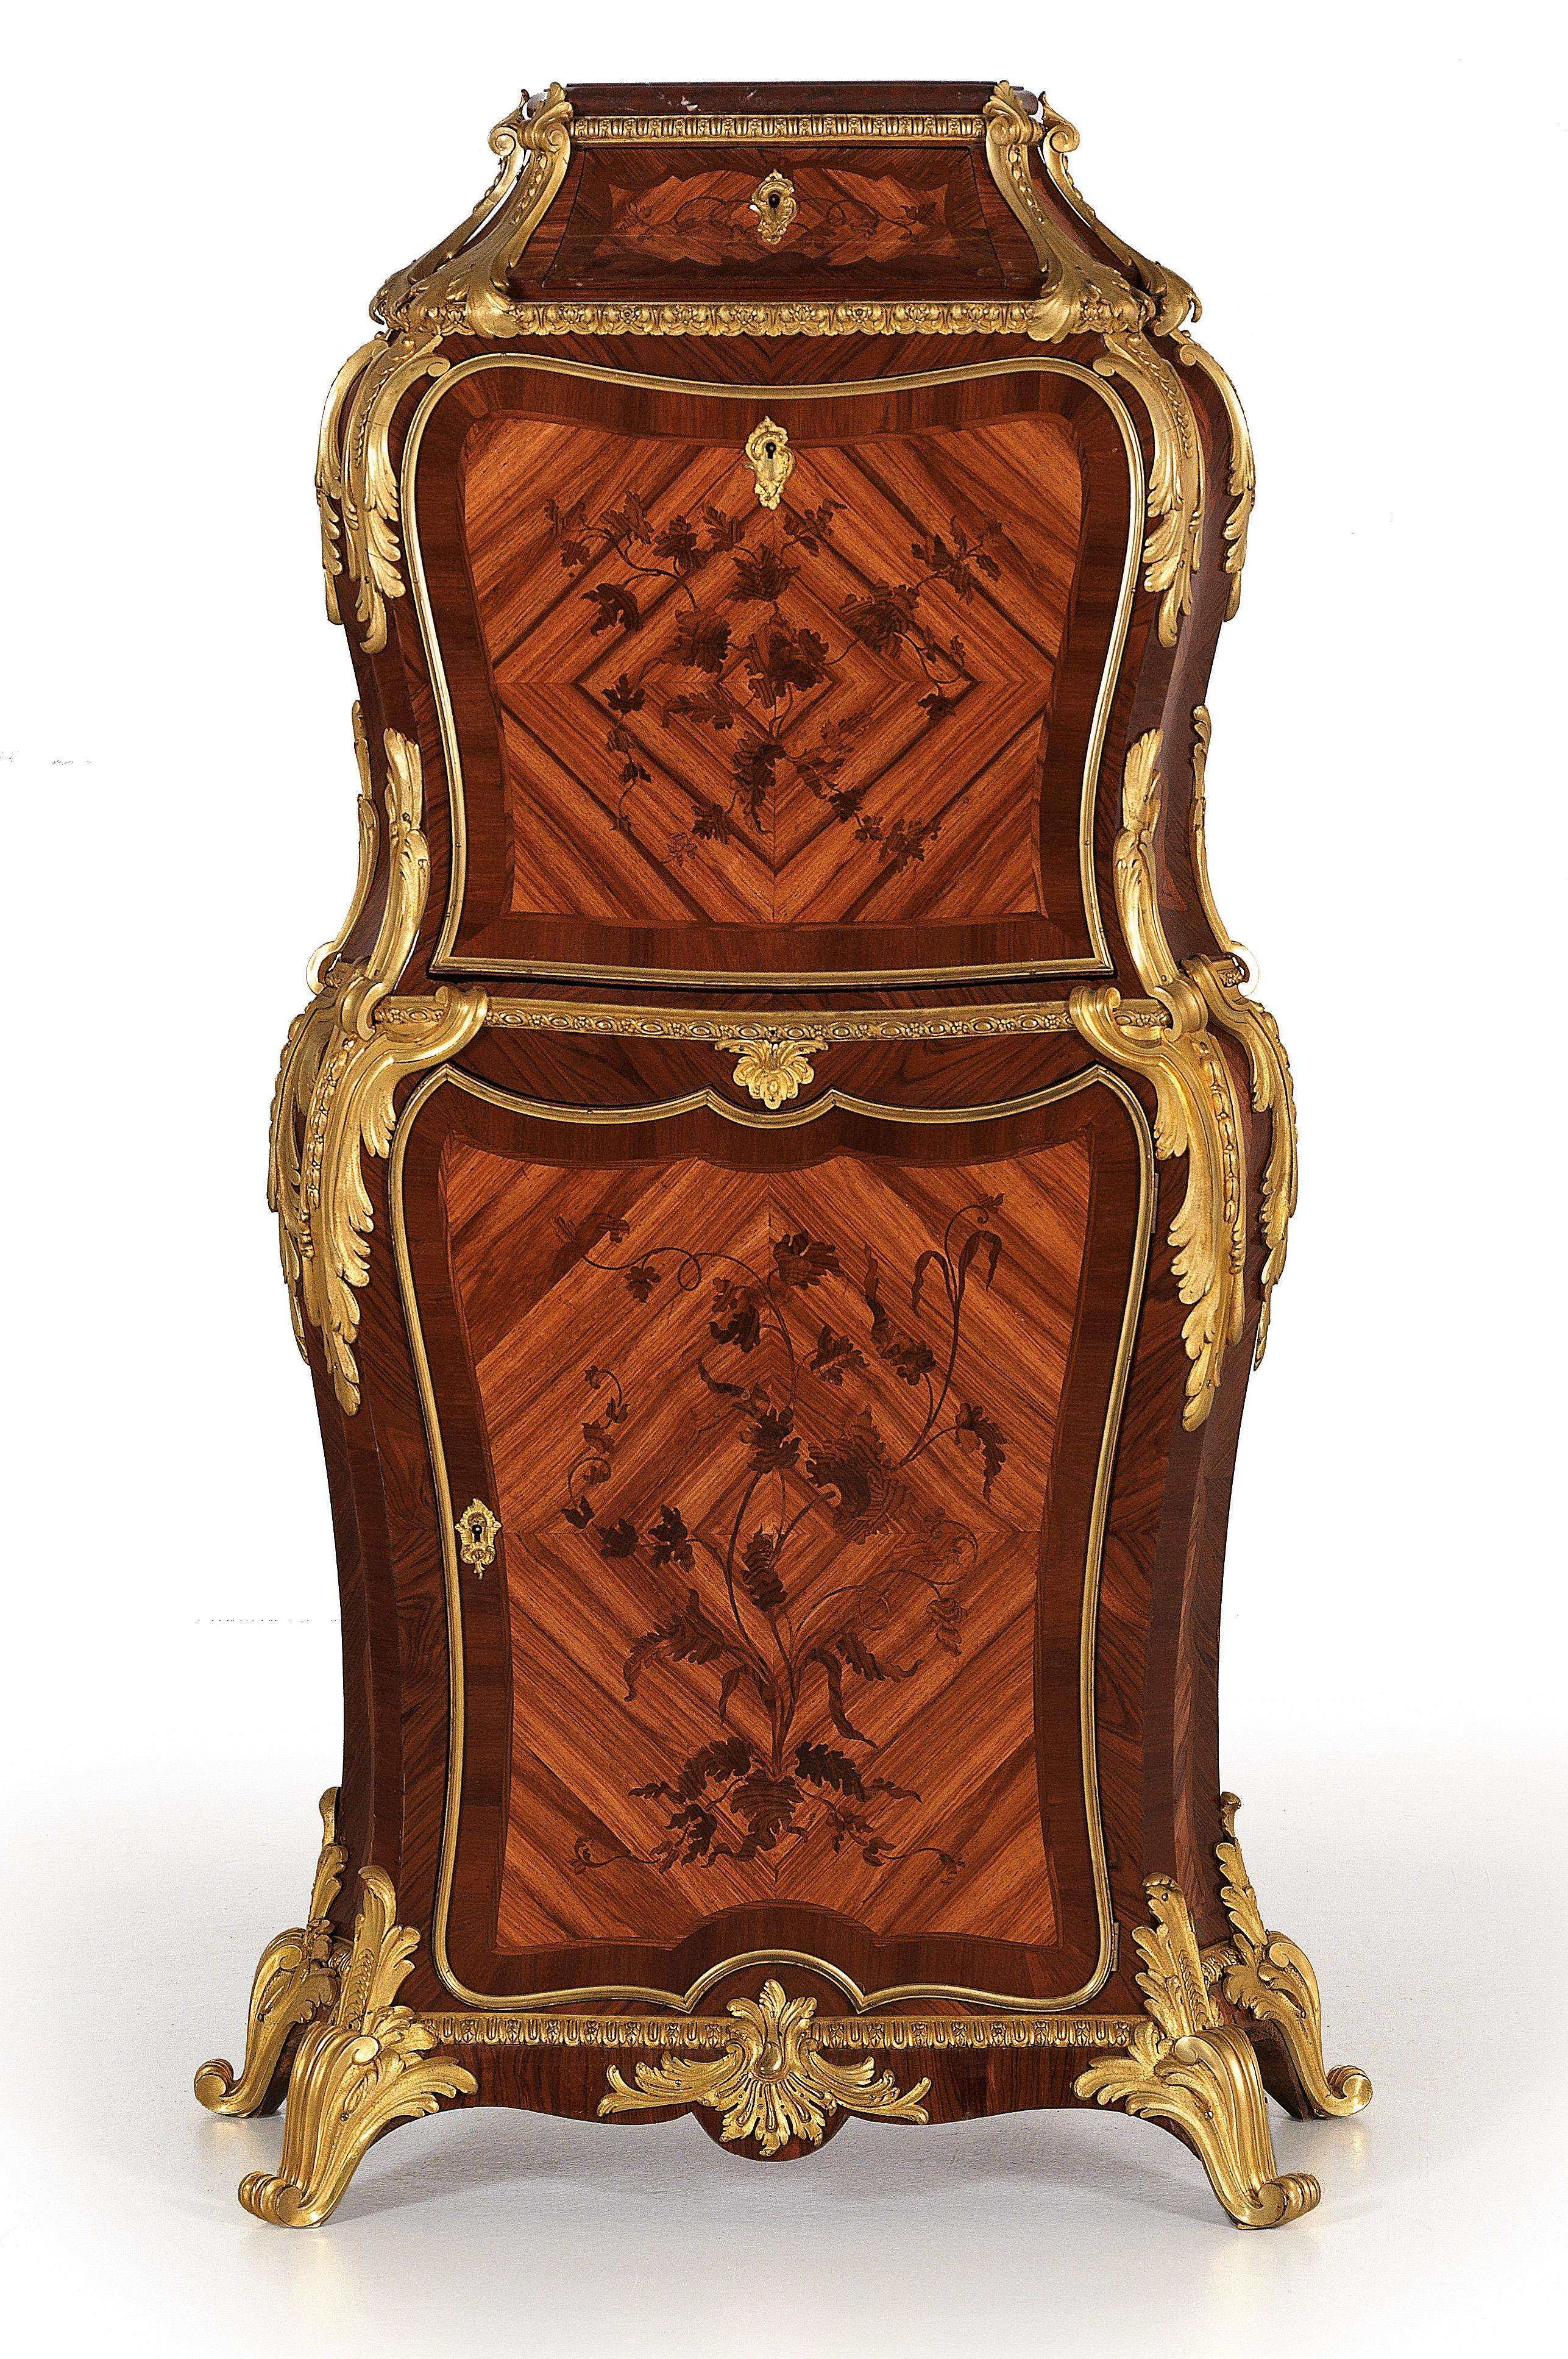 Outstanding and extremely rare English lady's desk or